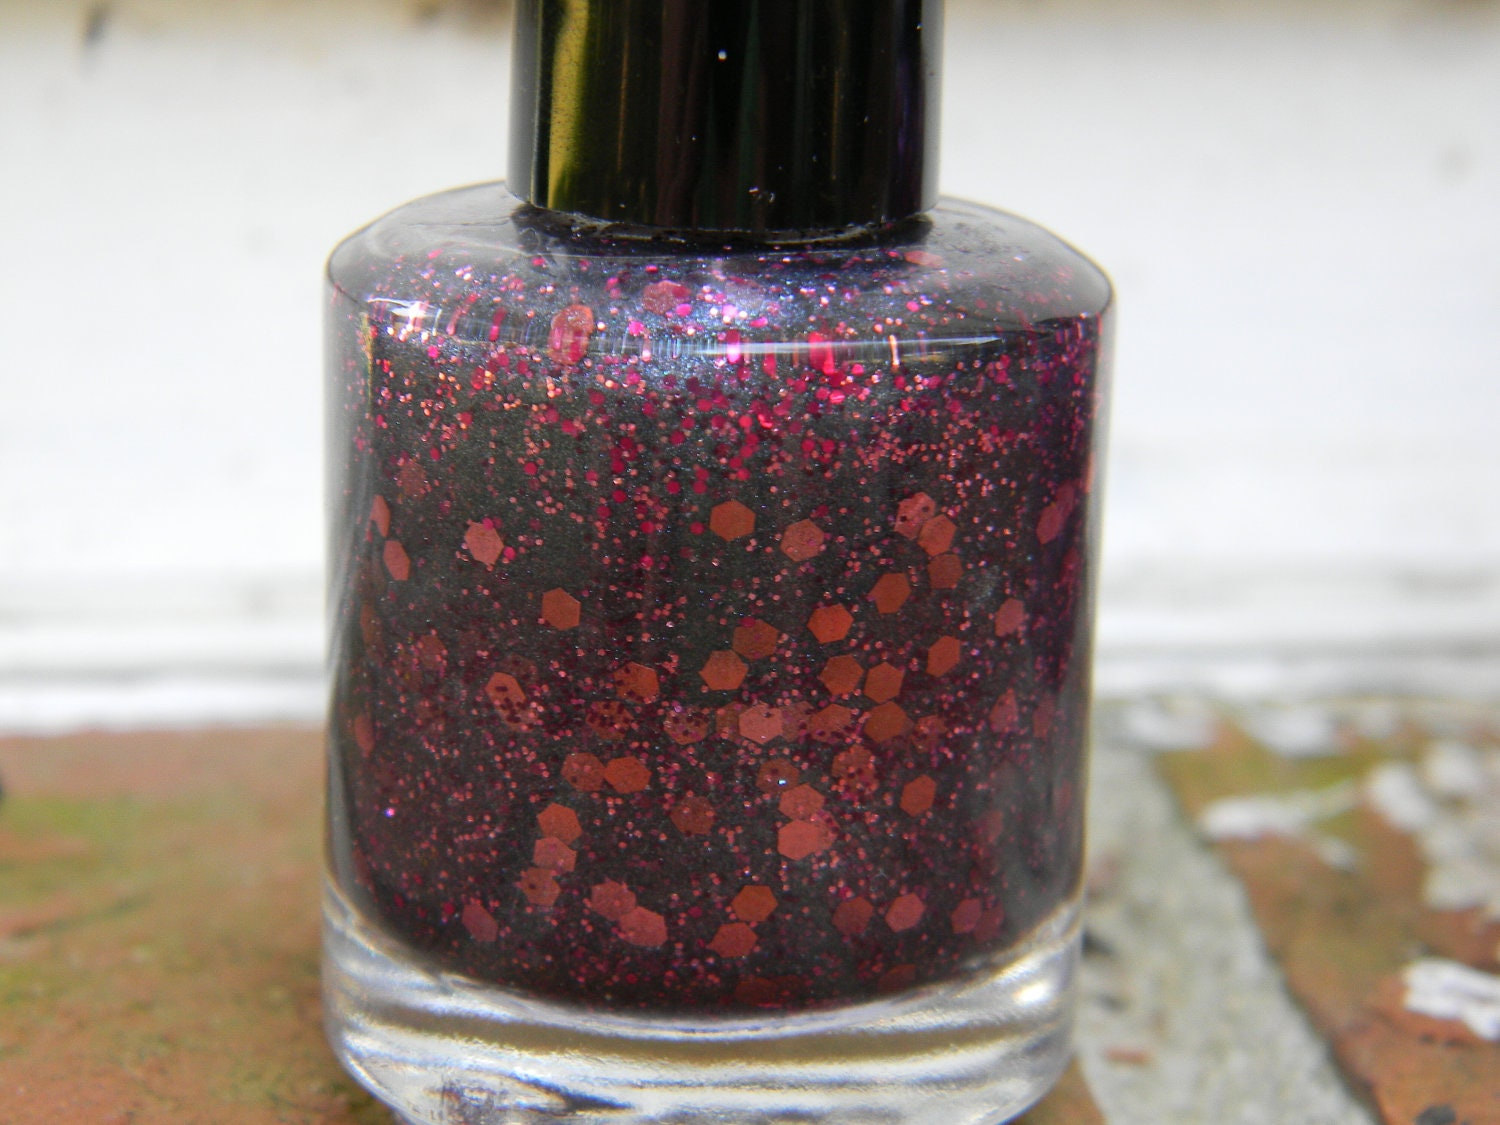 Guns & Roses - MINI Size Nail Polish: Deep blue/gray gunmetal shimmer polish with rose and berry sparkly glitter-7ML